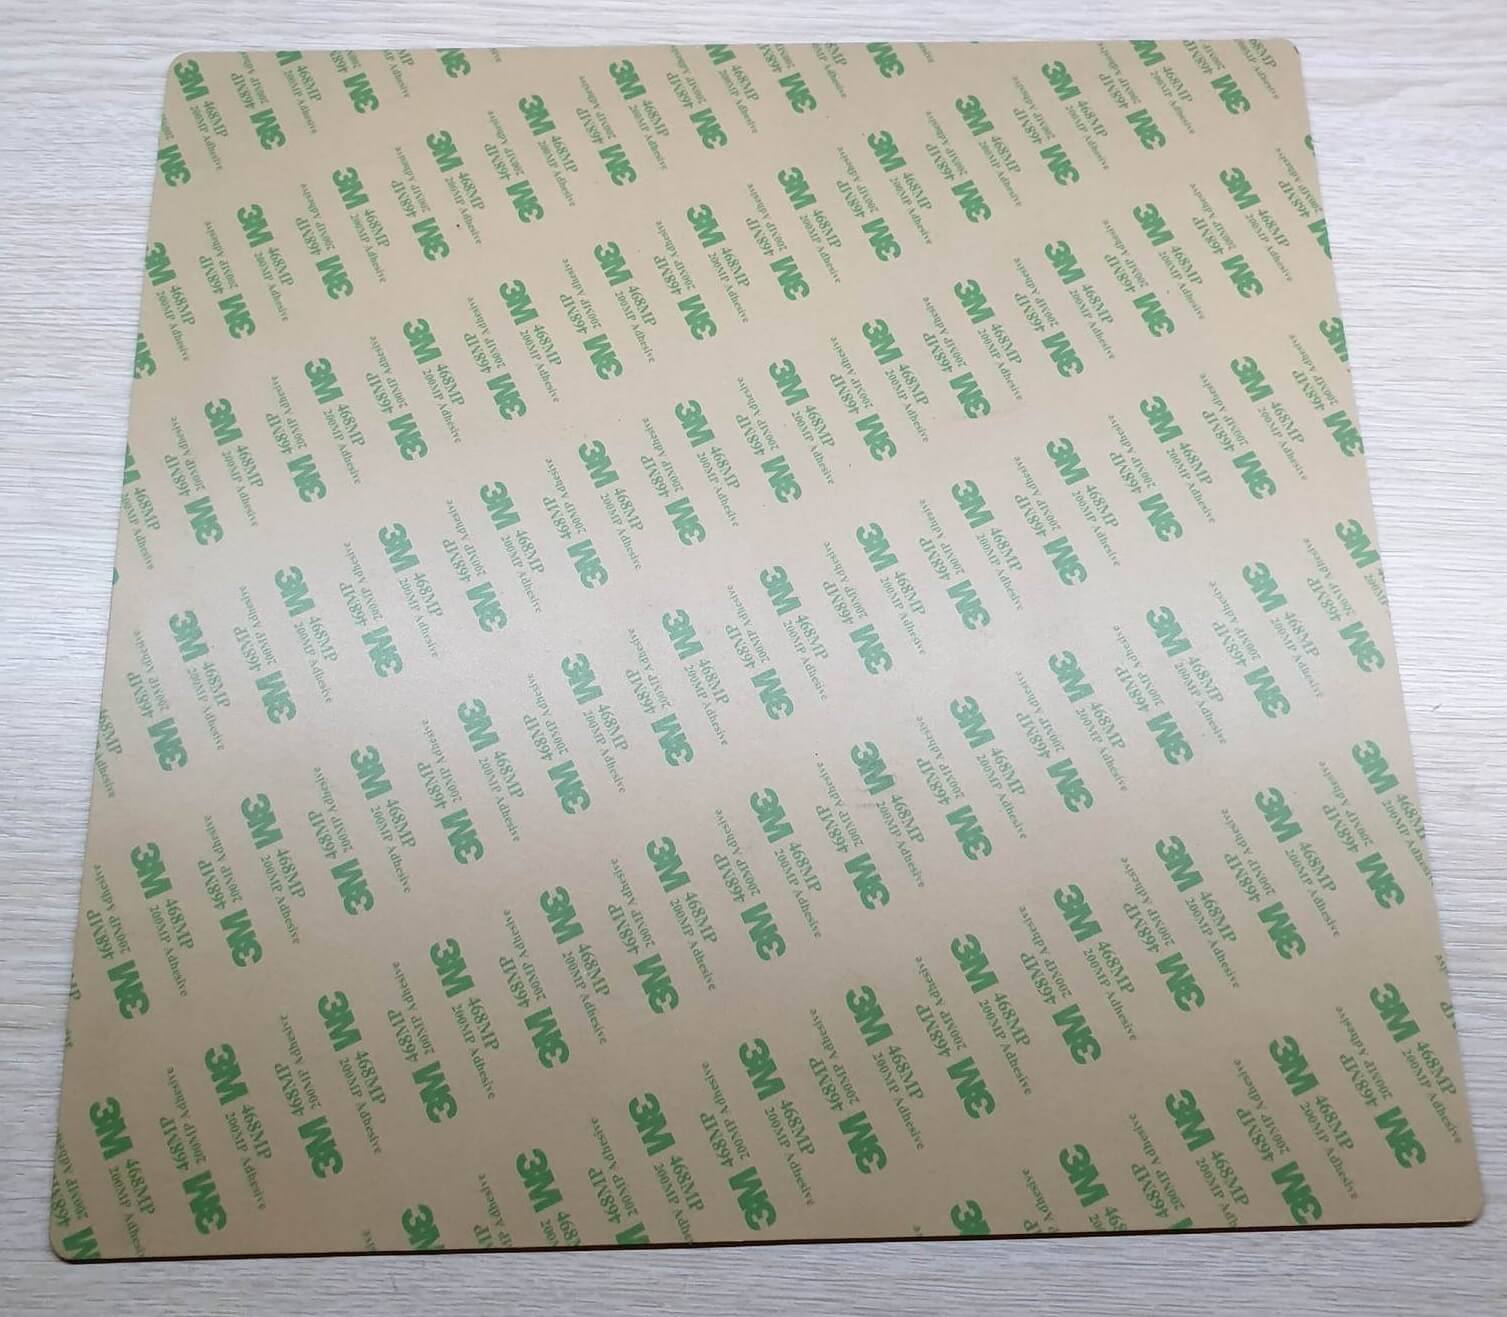 Trianglelab Textured PEI Sheet Magnetic Surface